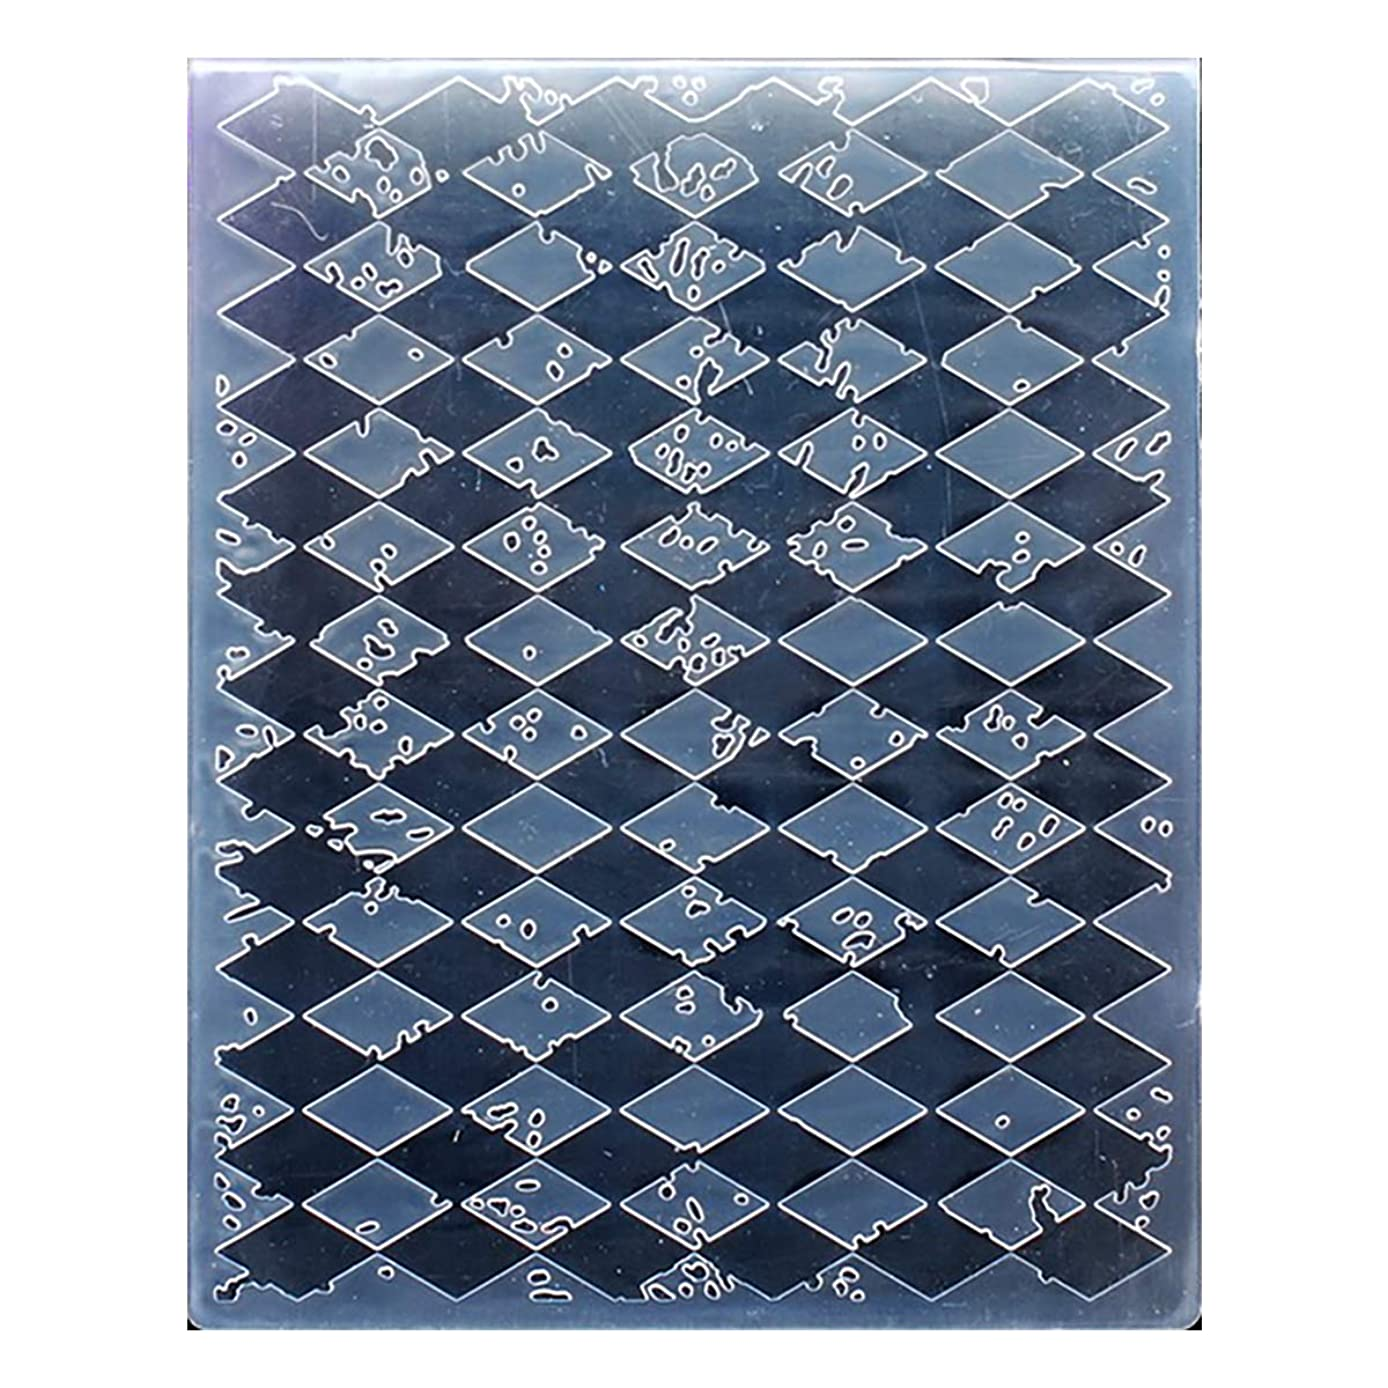 Kwan Crafts Diamond Plastic Embossing Folders for Card Making Scrapbooking and Other Paper Crafts, 12.1x15.2cm